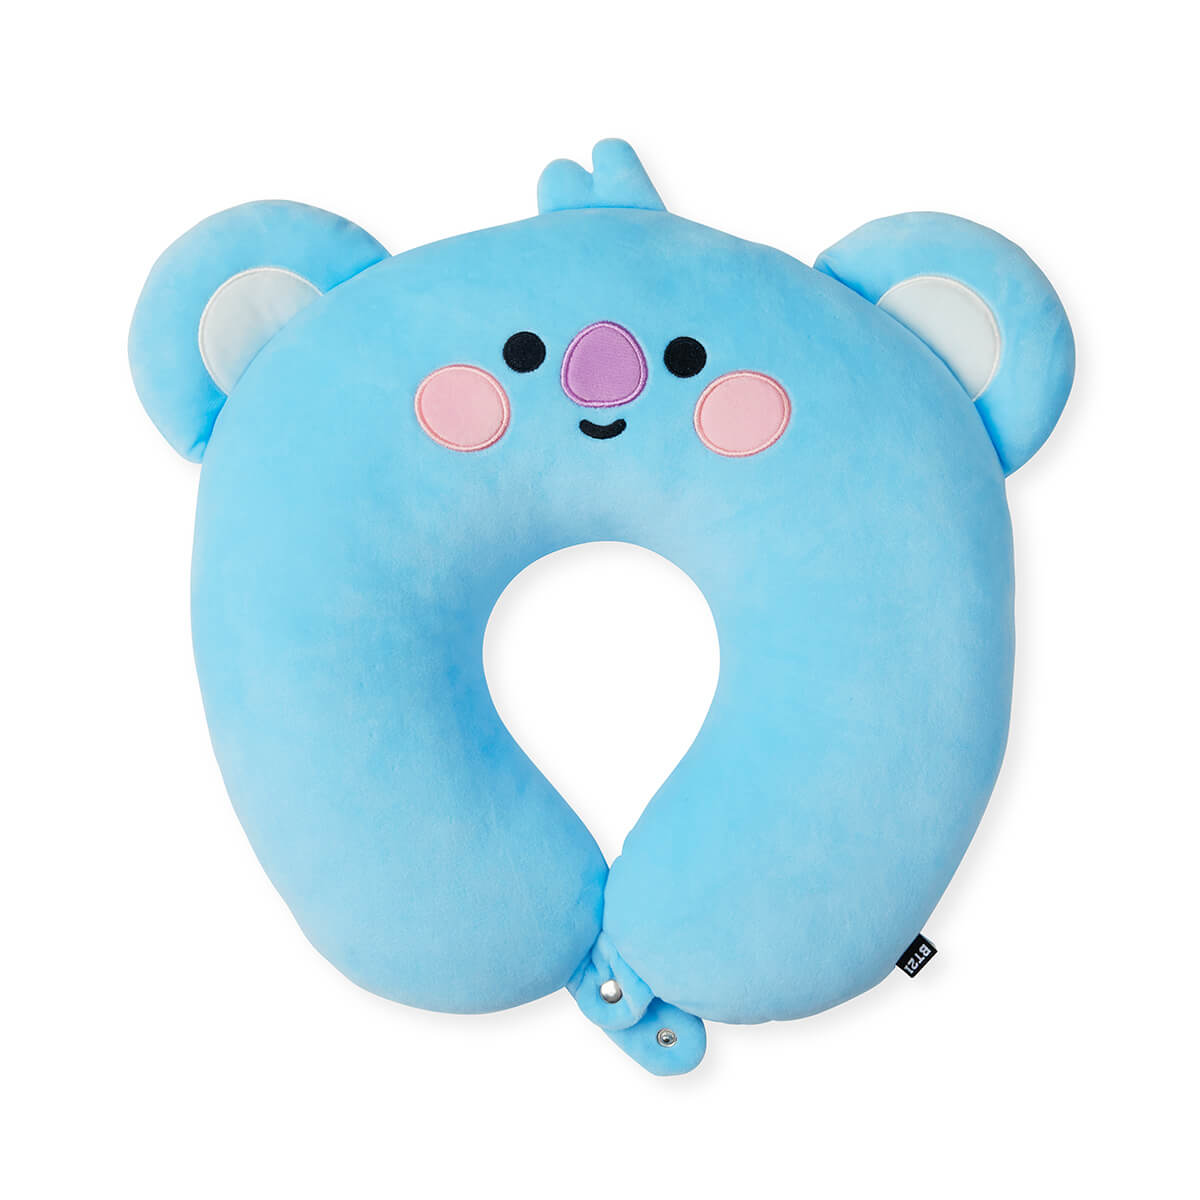 BT21 KOYA BABY Travel Neck Pillow w/ Snap Fastener